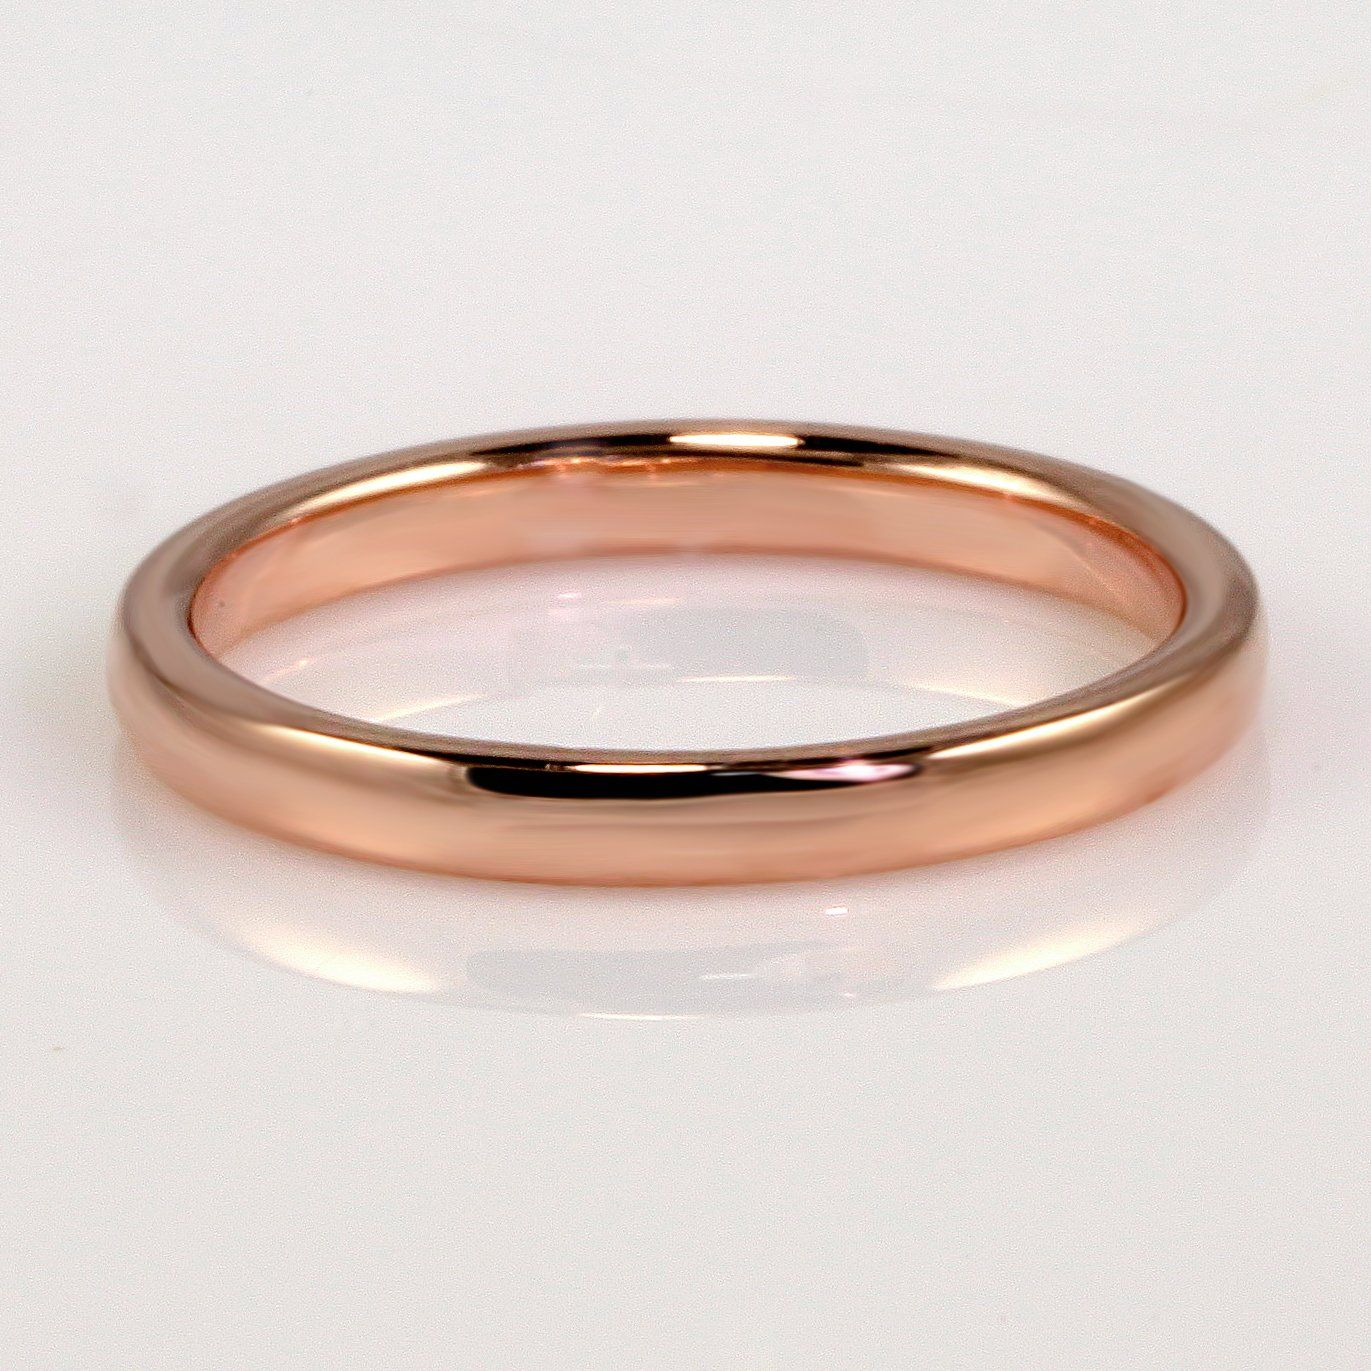 Mark Patterson 18K Rose Gold 2.3MM Rounded Wedding Band